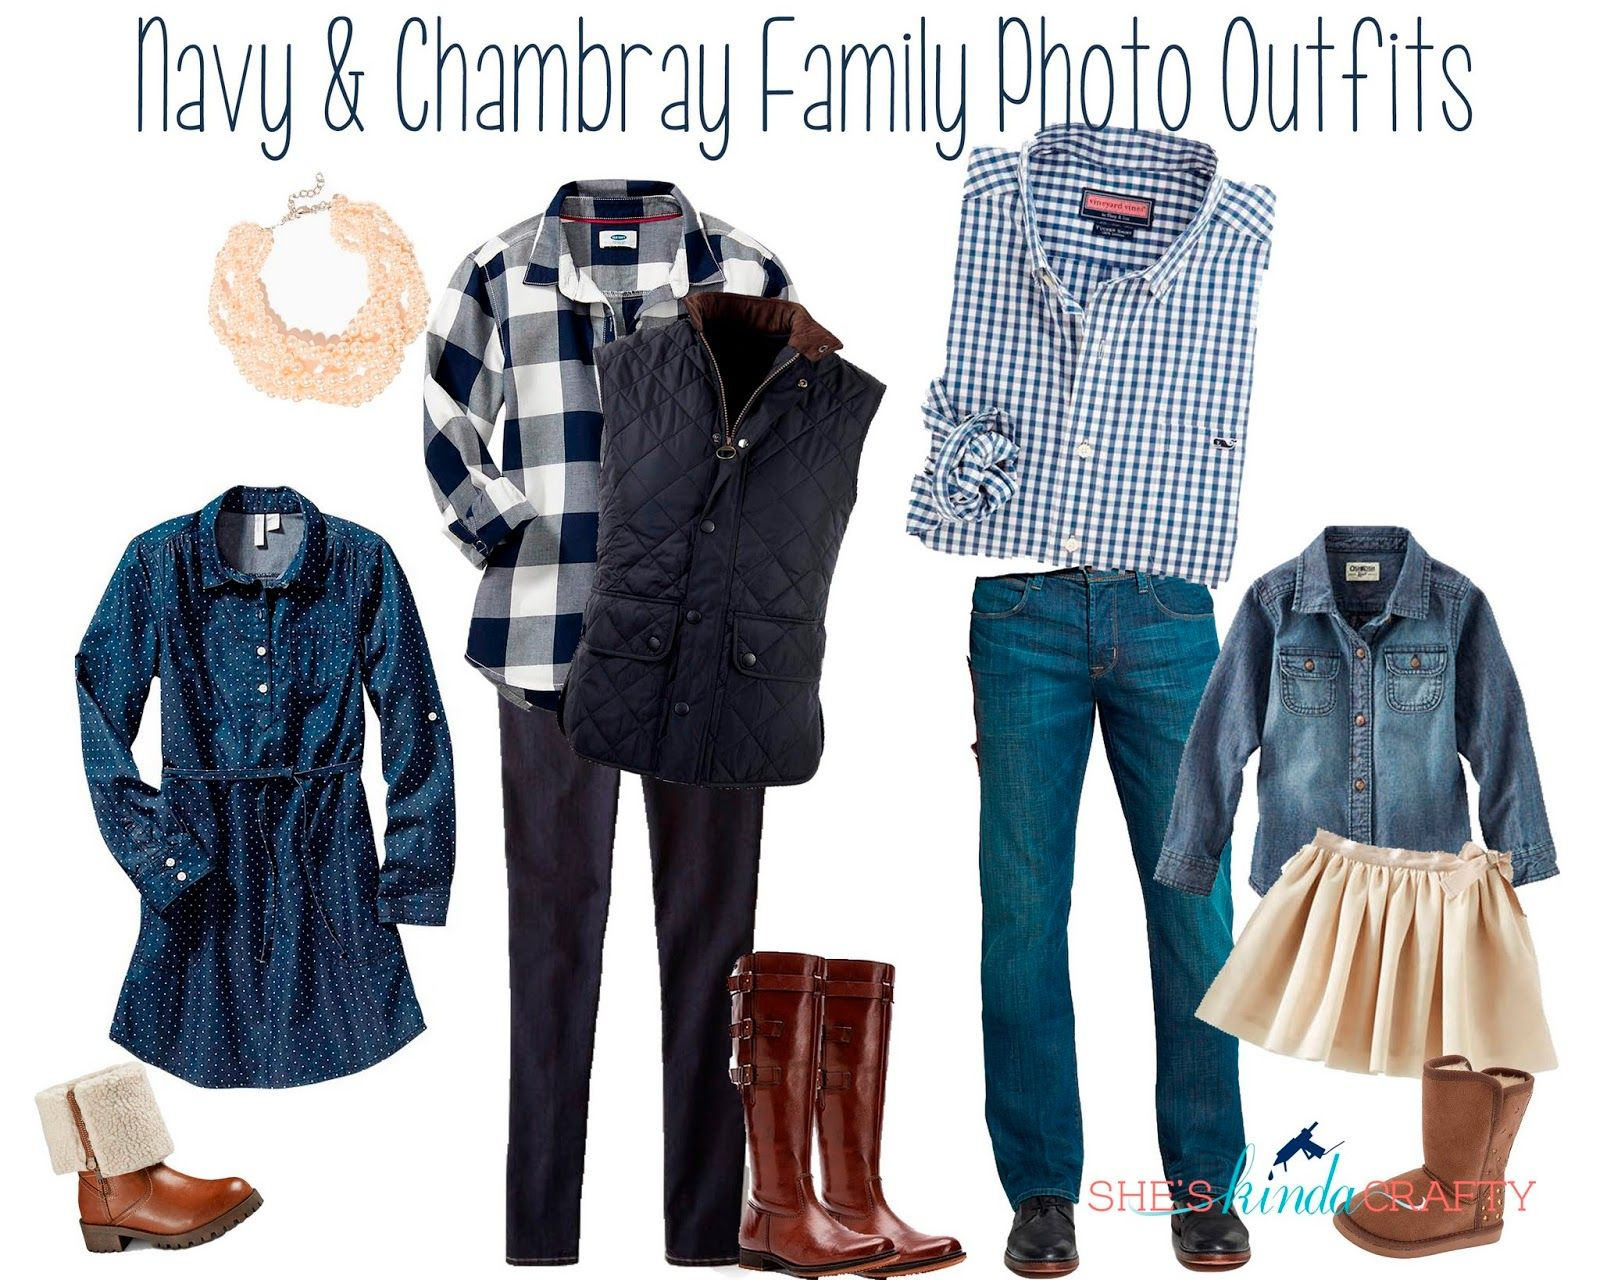 Family Photos What to Wear | Navy and Chambray Family Photo Outfits #winterfamilyphotography